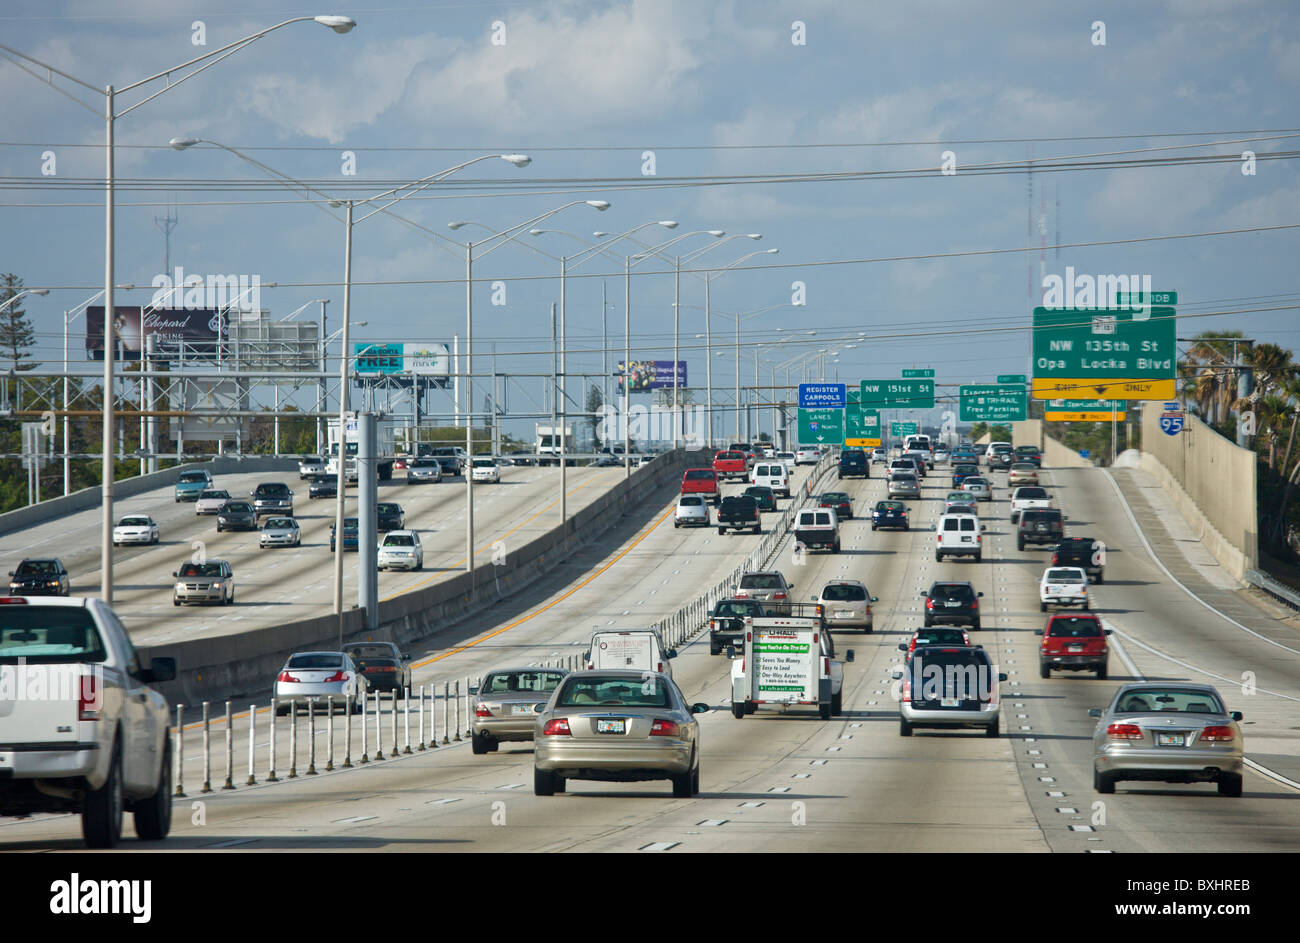 Traffic on the highway heading out of Miami at Opa Locka Boulevard, Florida, United States of America - Stock Image